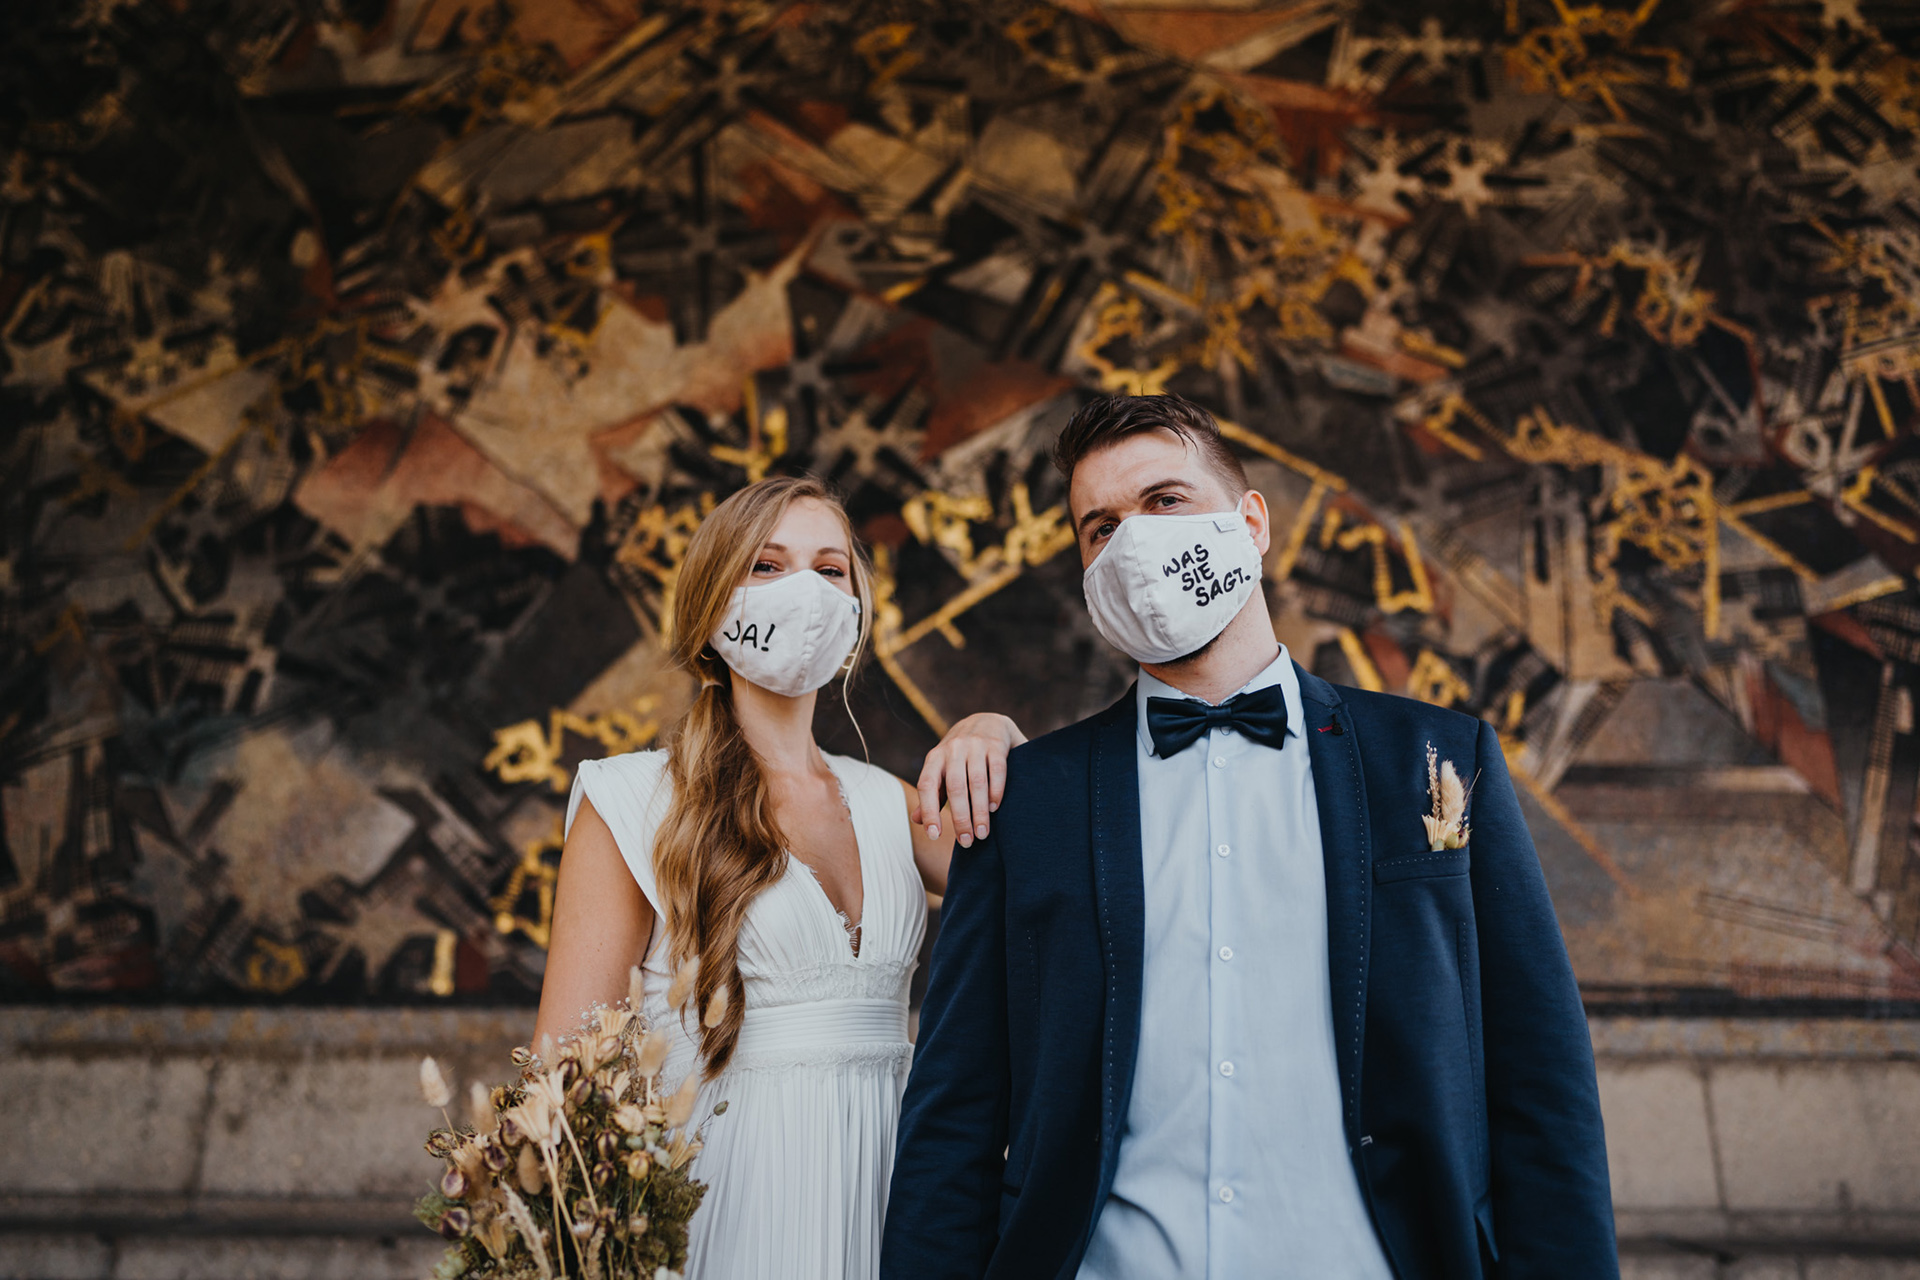 Düsseldorf Registry Office - Germany Wedding Portrait | in order to prevent the spread of the COVID-19 virus, the bride and groom wore tongue-in-cheek face masks